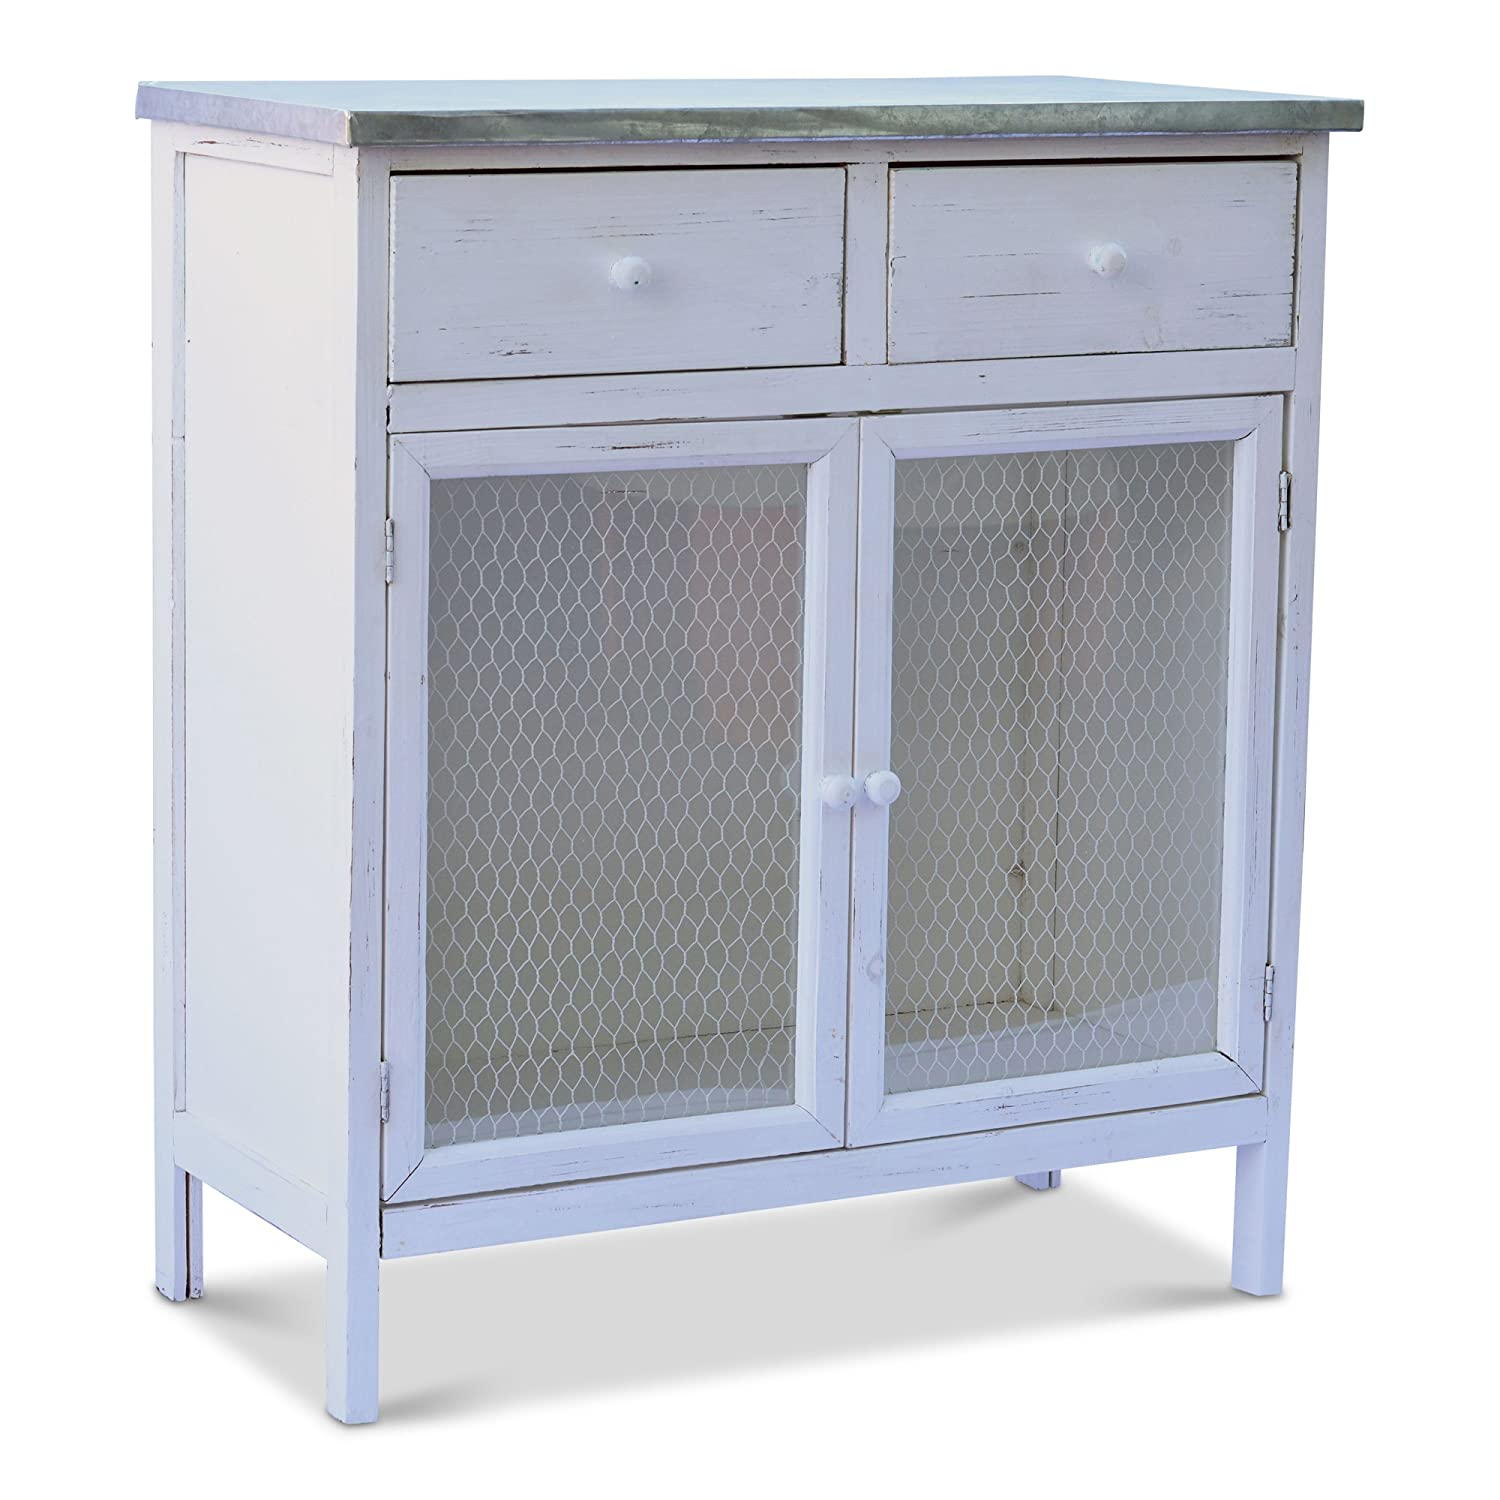 Distressed Rustic Finish Galvanized Metal Chicken Wire 2 Drawers Farmers Market Shabby Commode Cabinet White Stained Sustainable Wood 29 1//2 L x 13 3//4 W x 32 3//4 H Inches Whole House Worlds 55.46